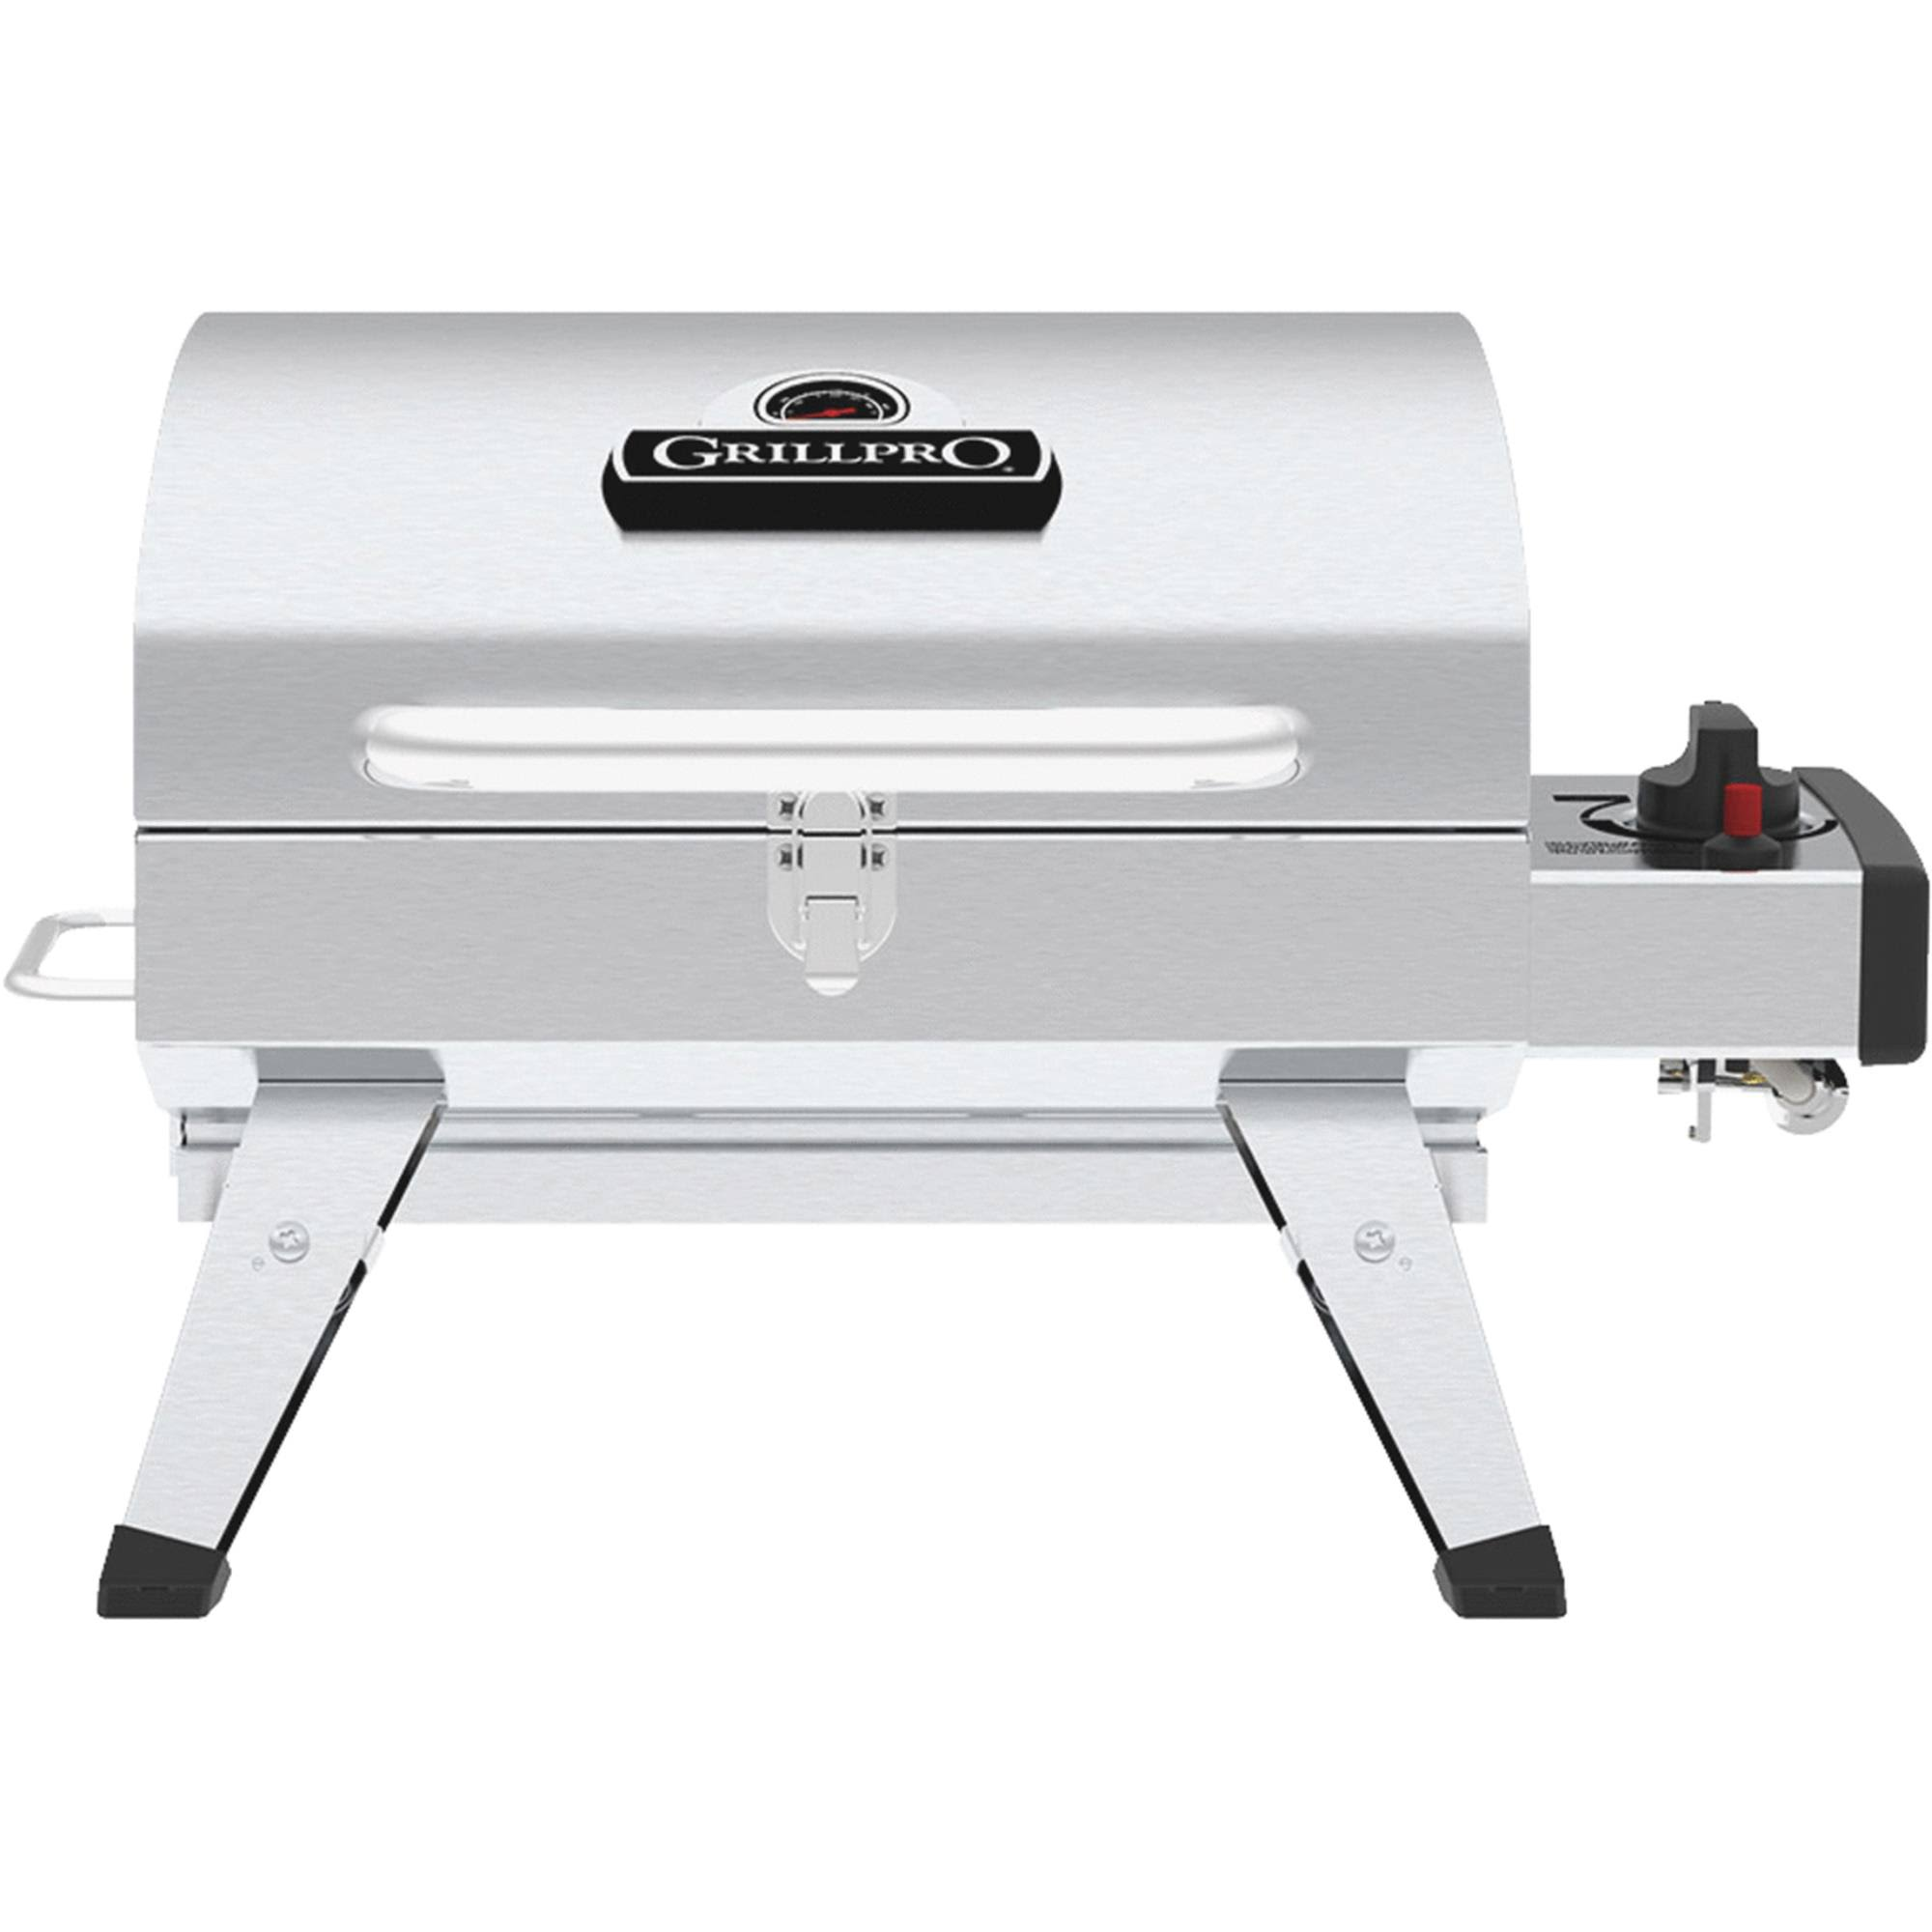 GrillPro Table Top Stainless Steel Propane Gas Grill